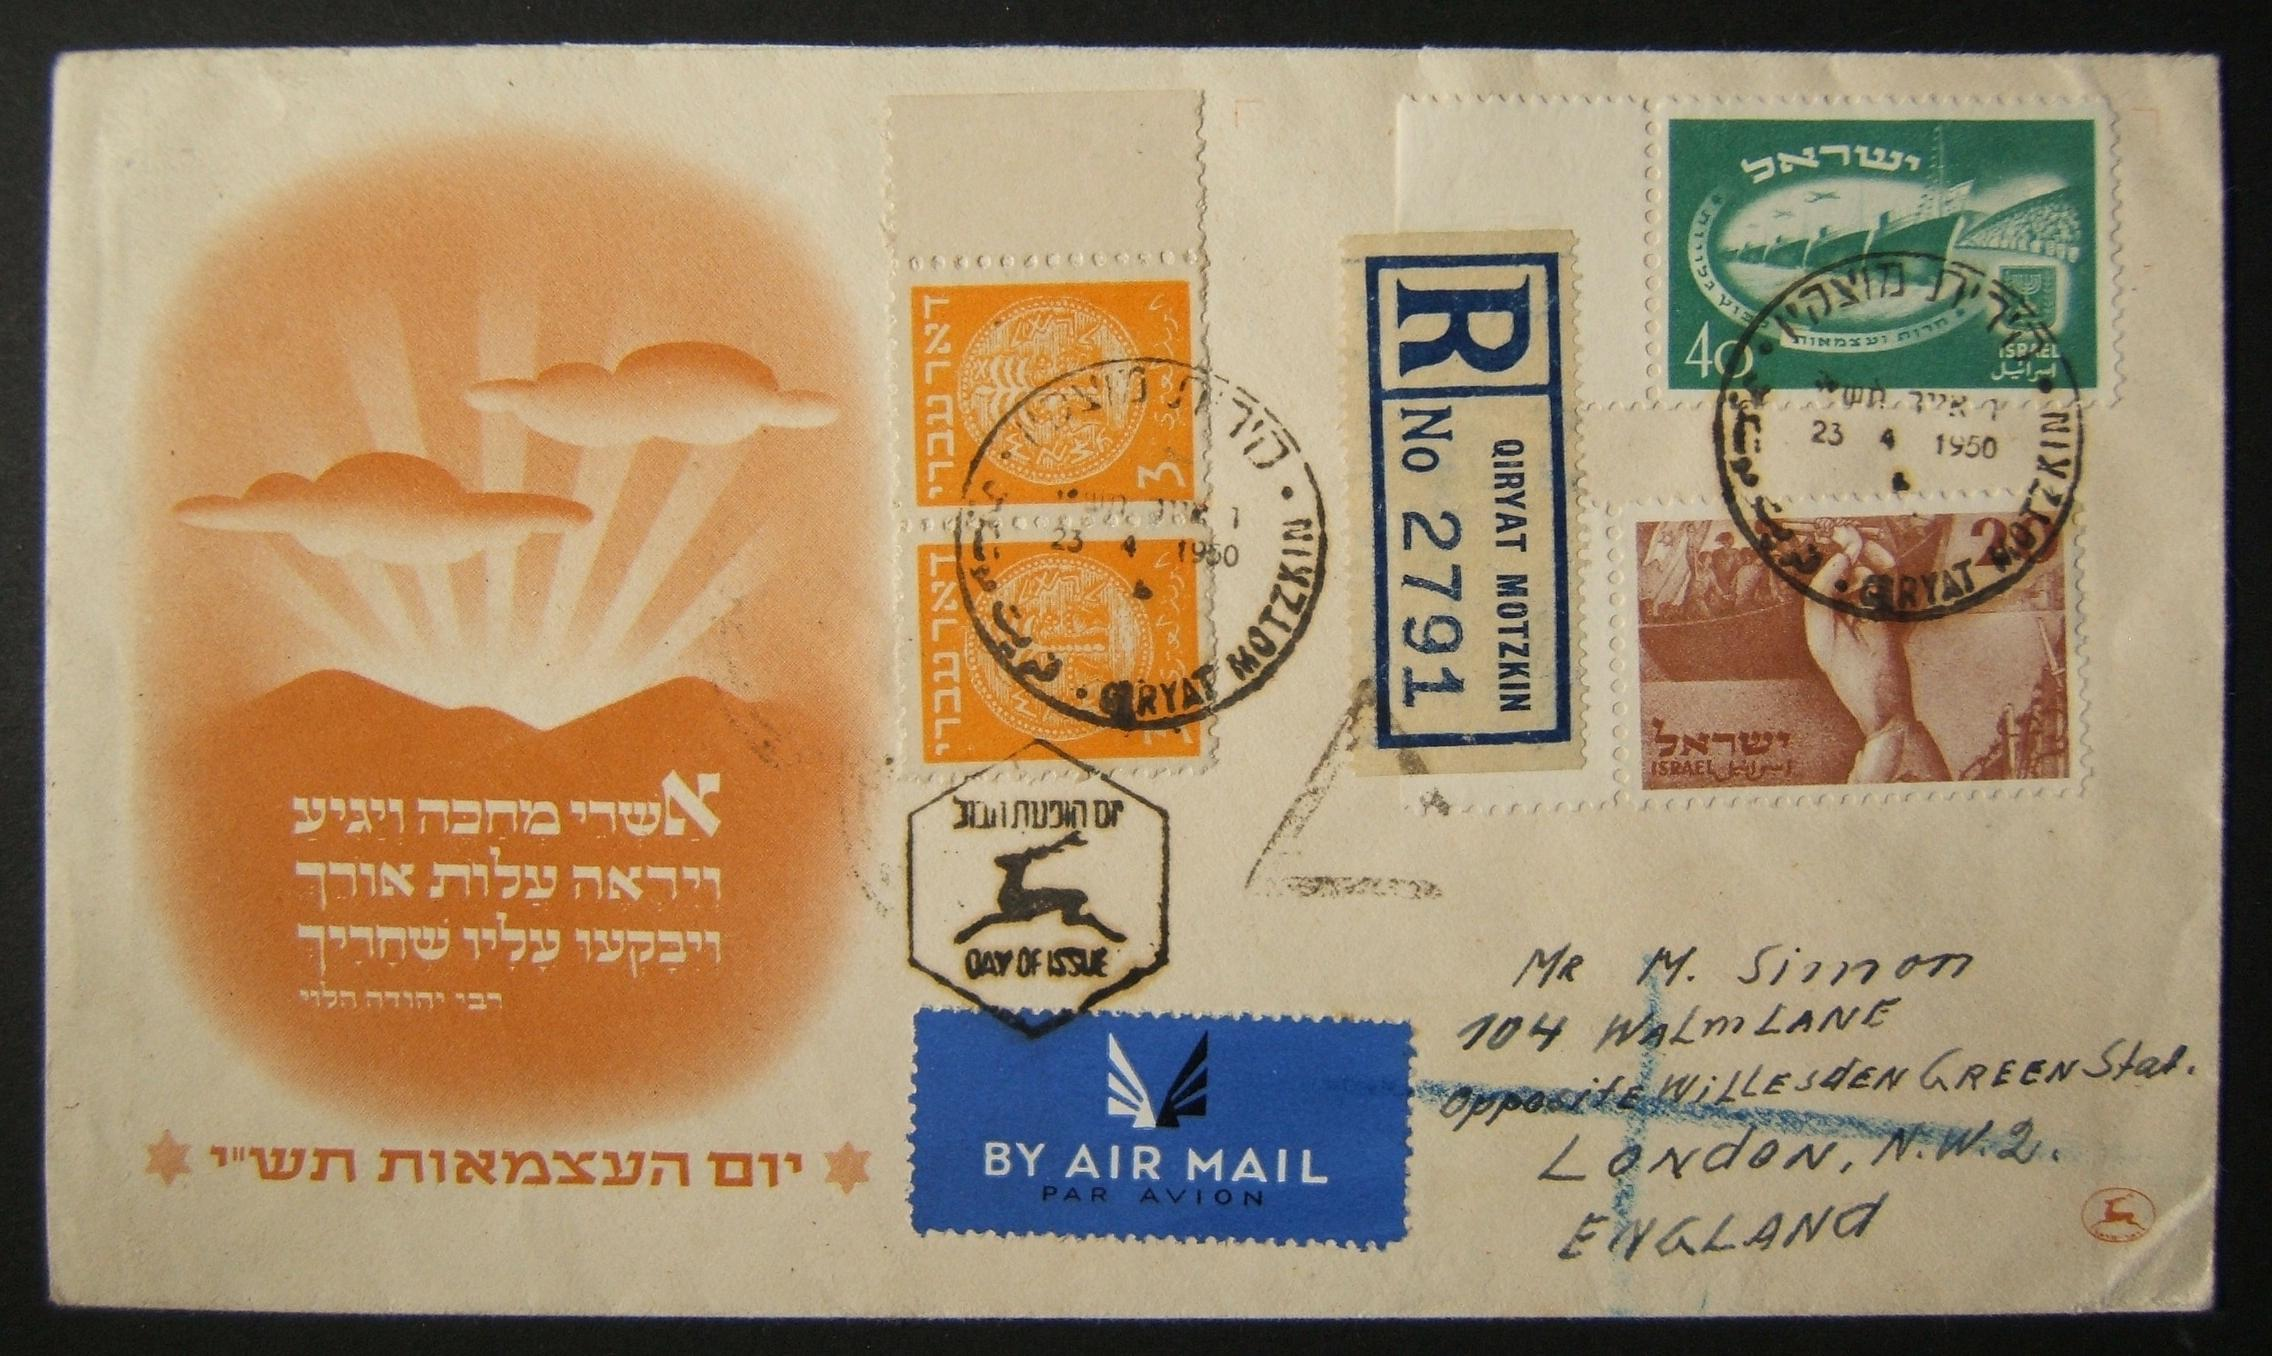 23-4-1950 official 1st day Independence Day cover to UK with dateless triangular postmark